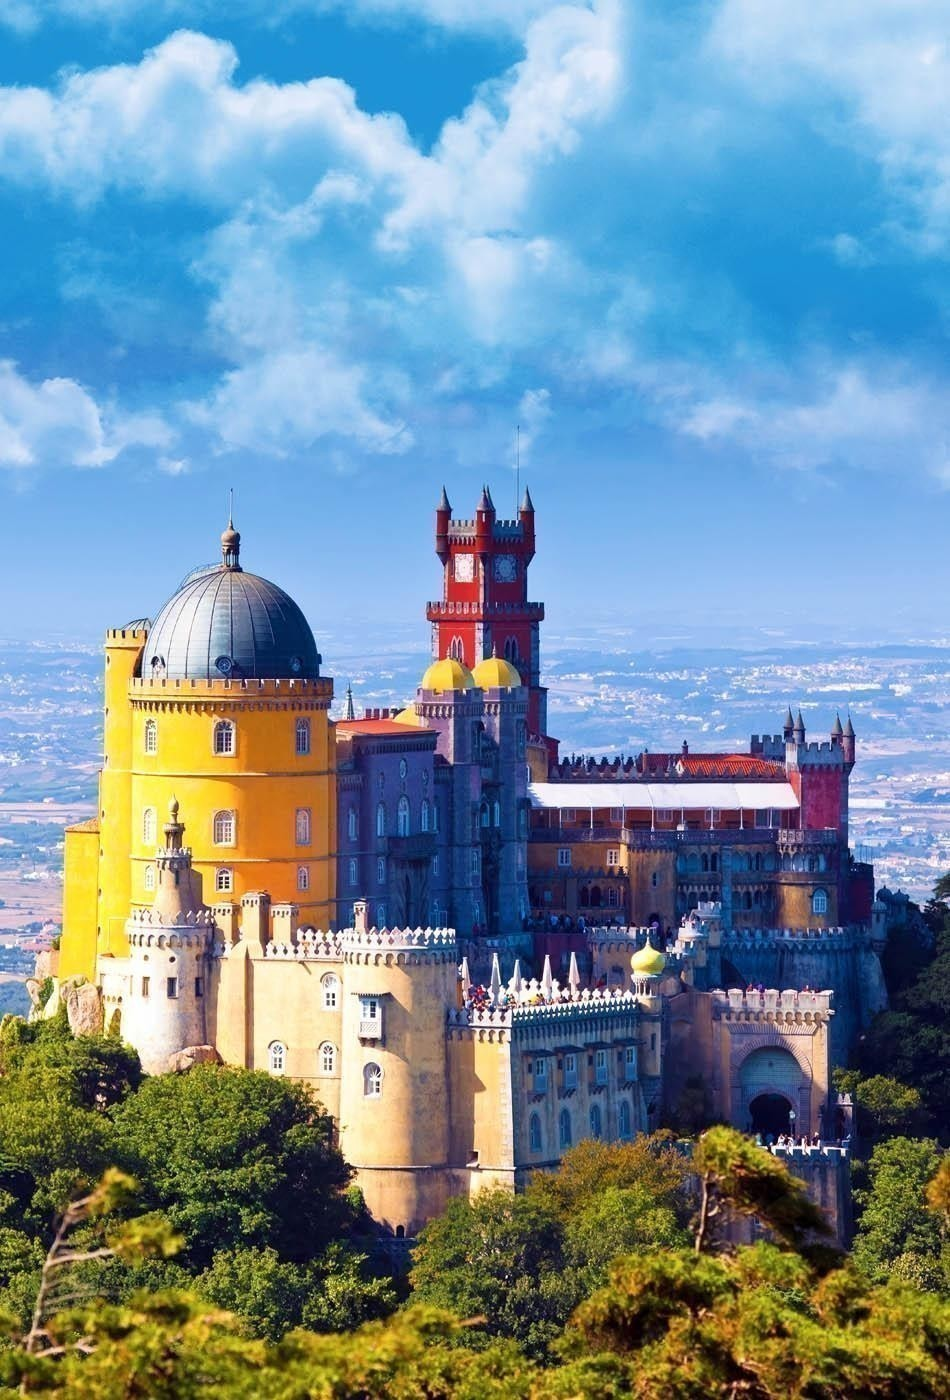 Pena National Palace in Sintra, Portugal | 10 Most Beautiful Castles in Europe